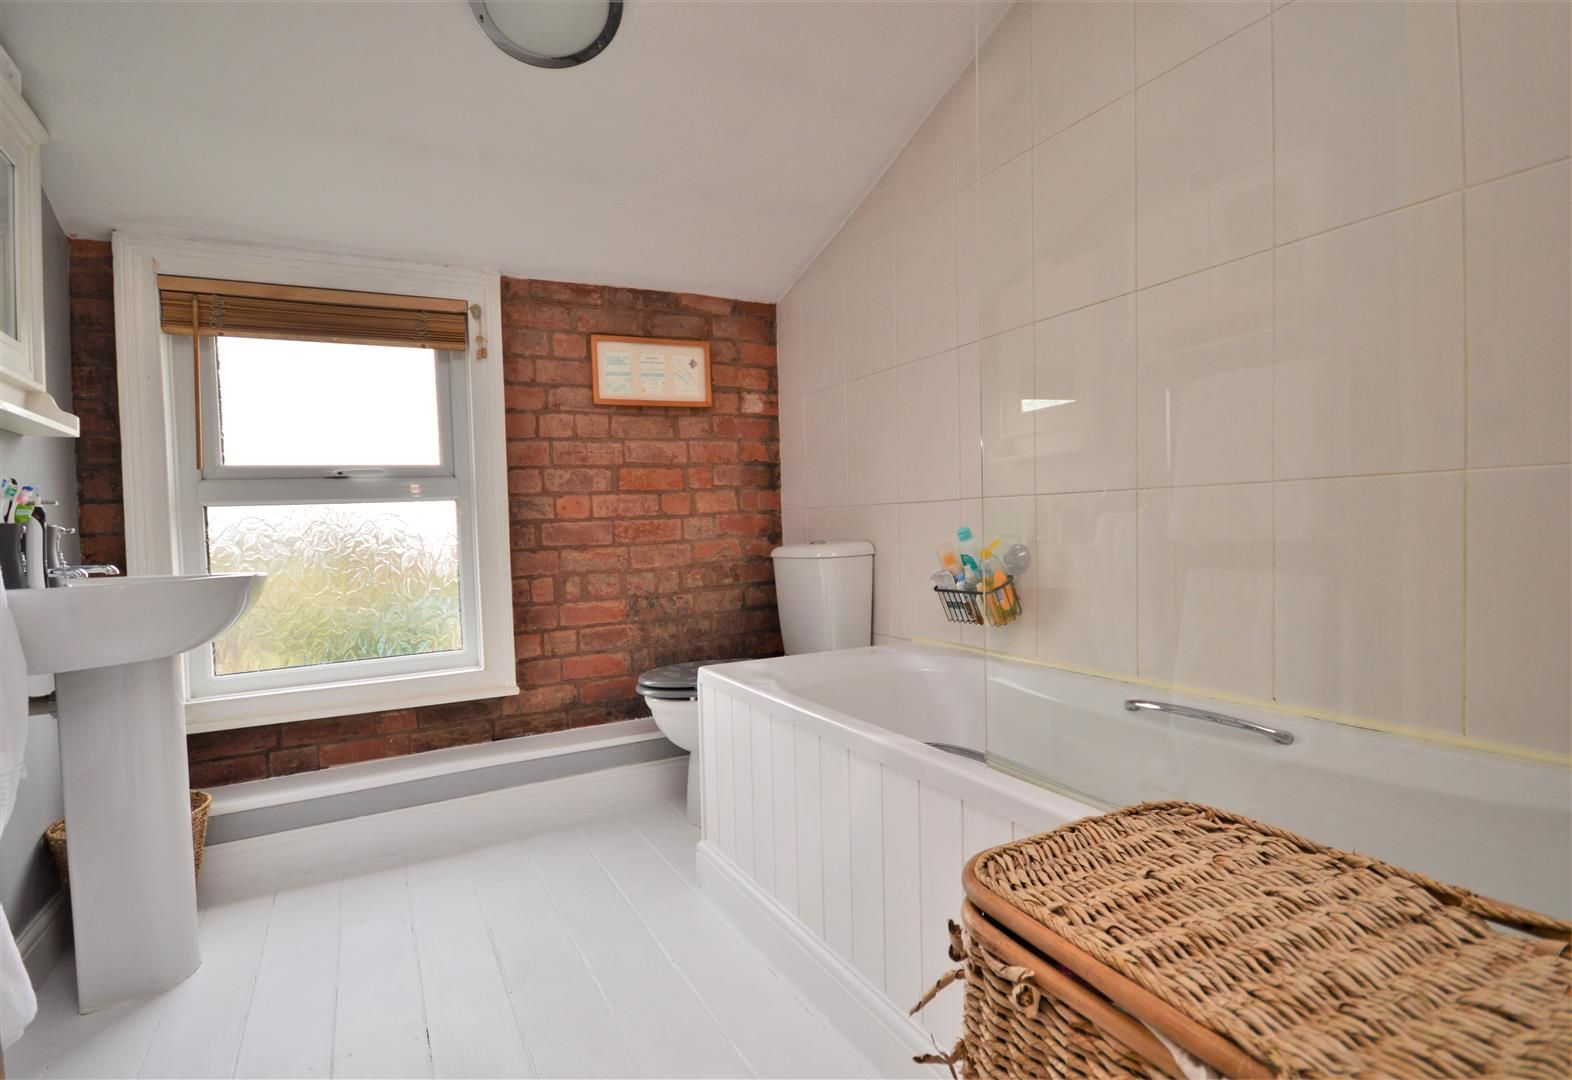 2 bed end-of-terrace for sale 12